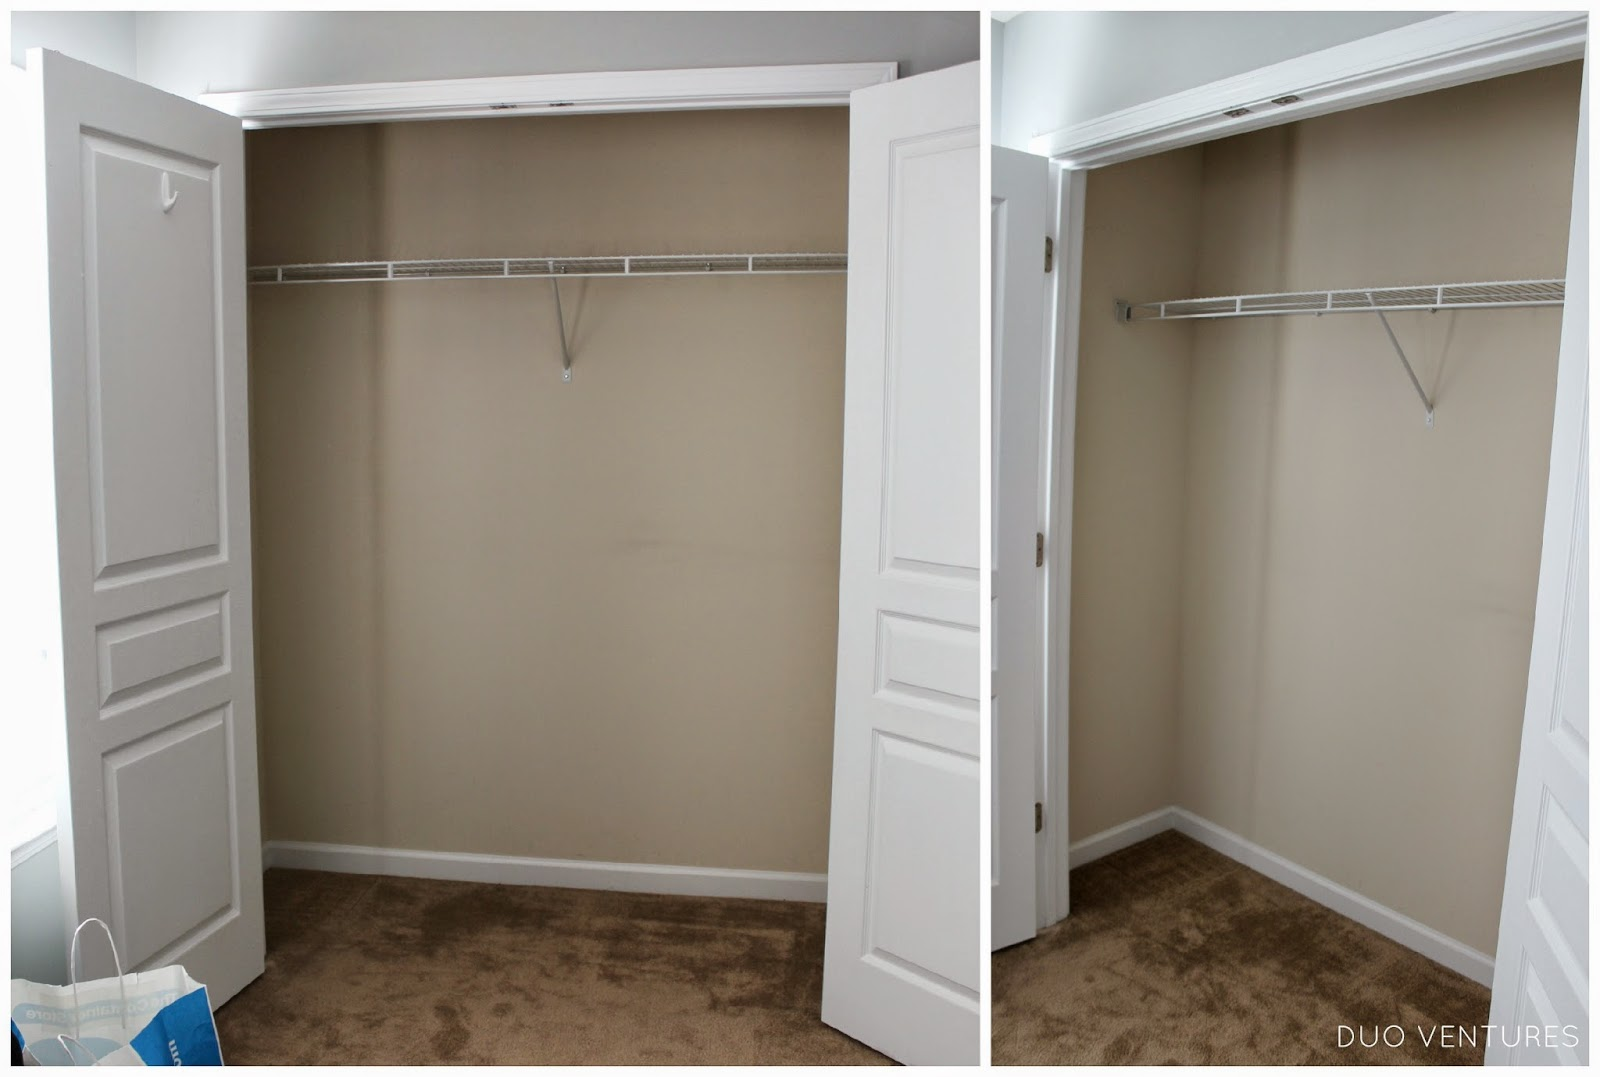 Closet Shelves Duo Ventures Guest Bedroom Closet Organizer Install